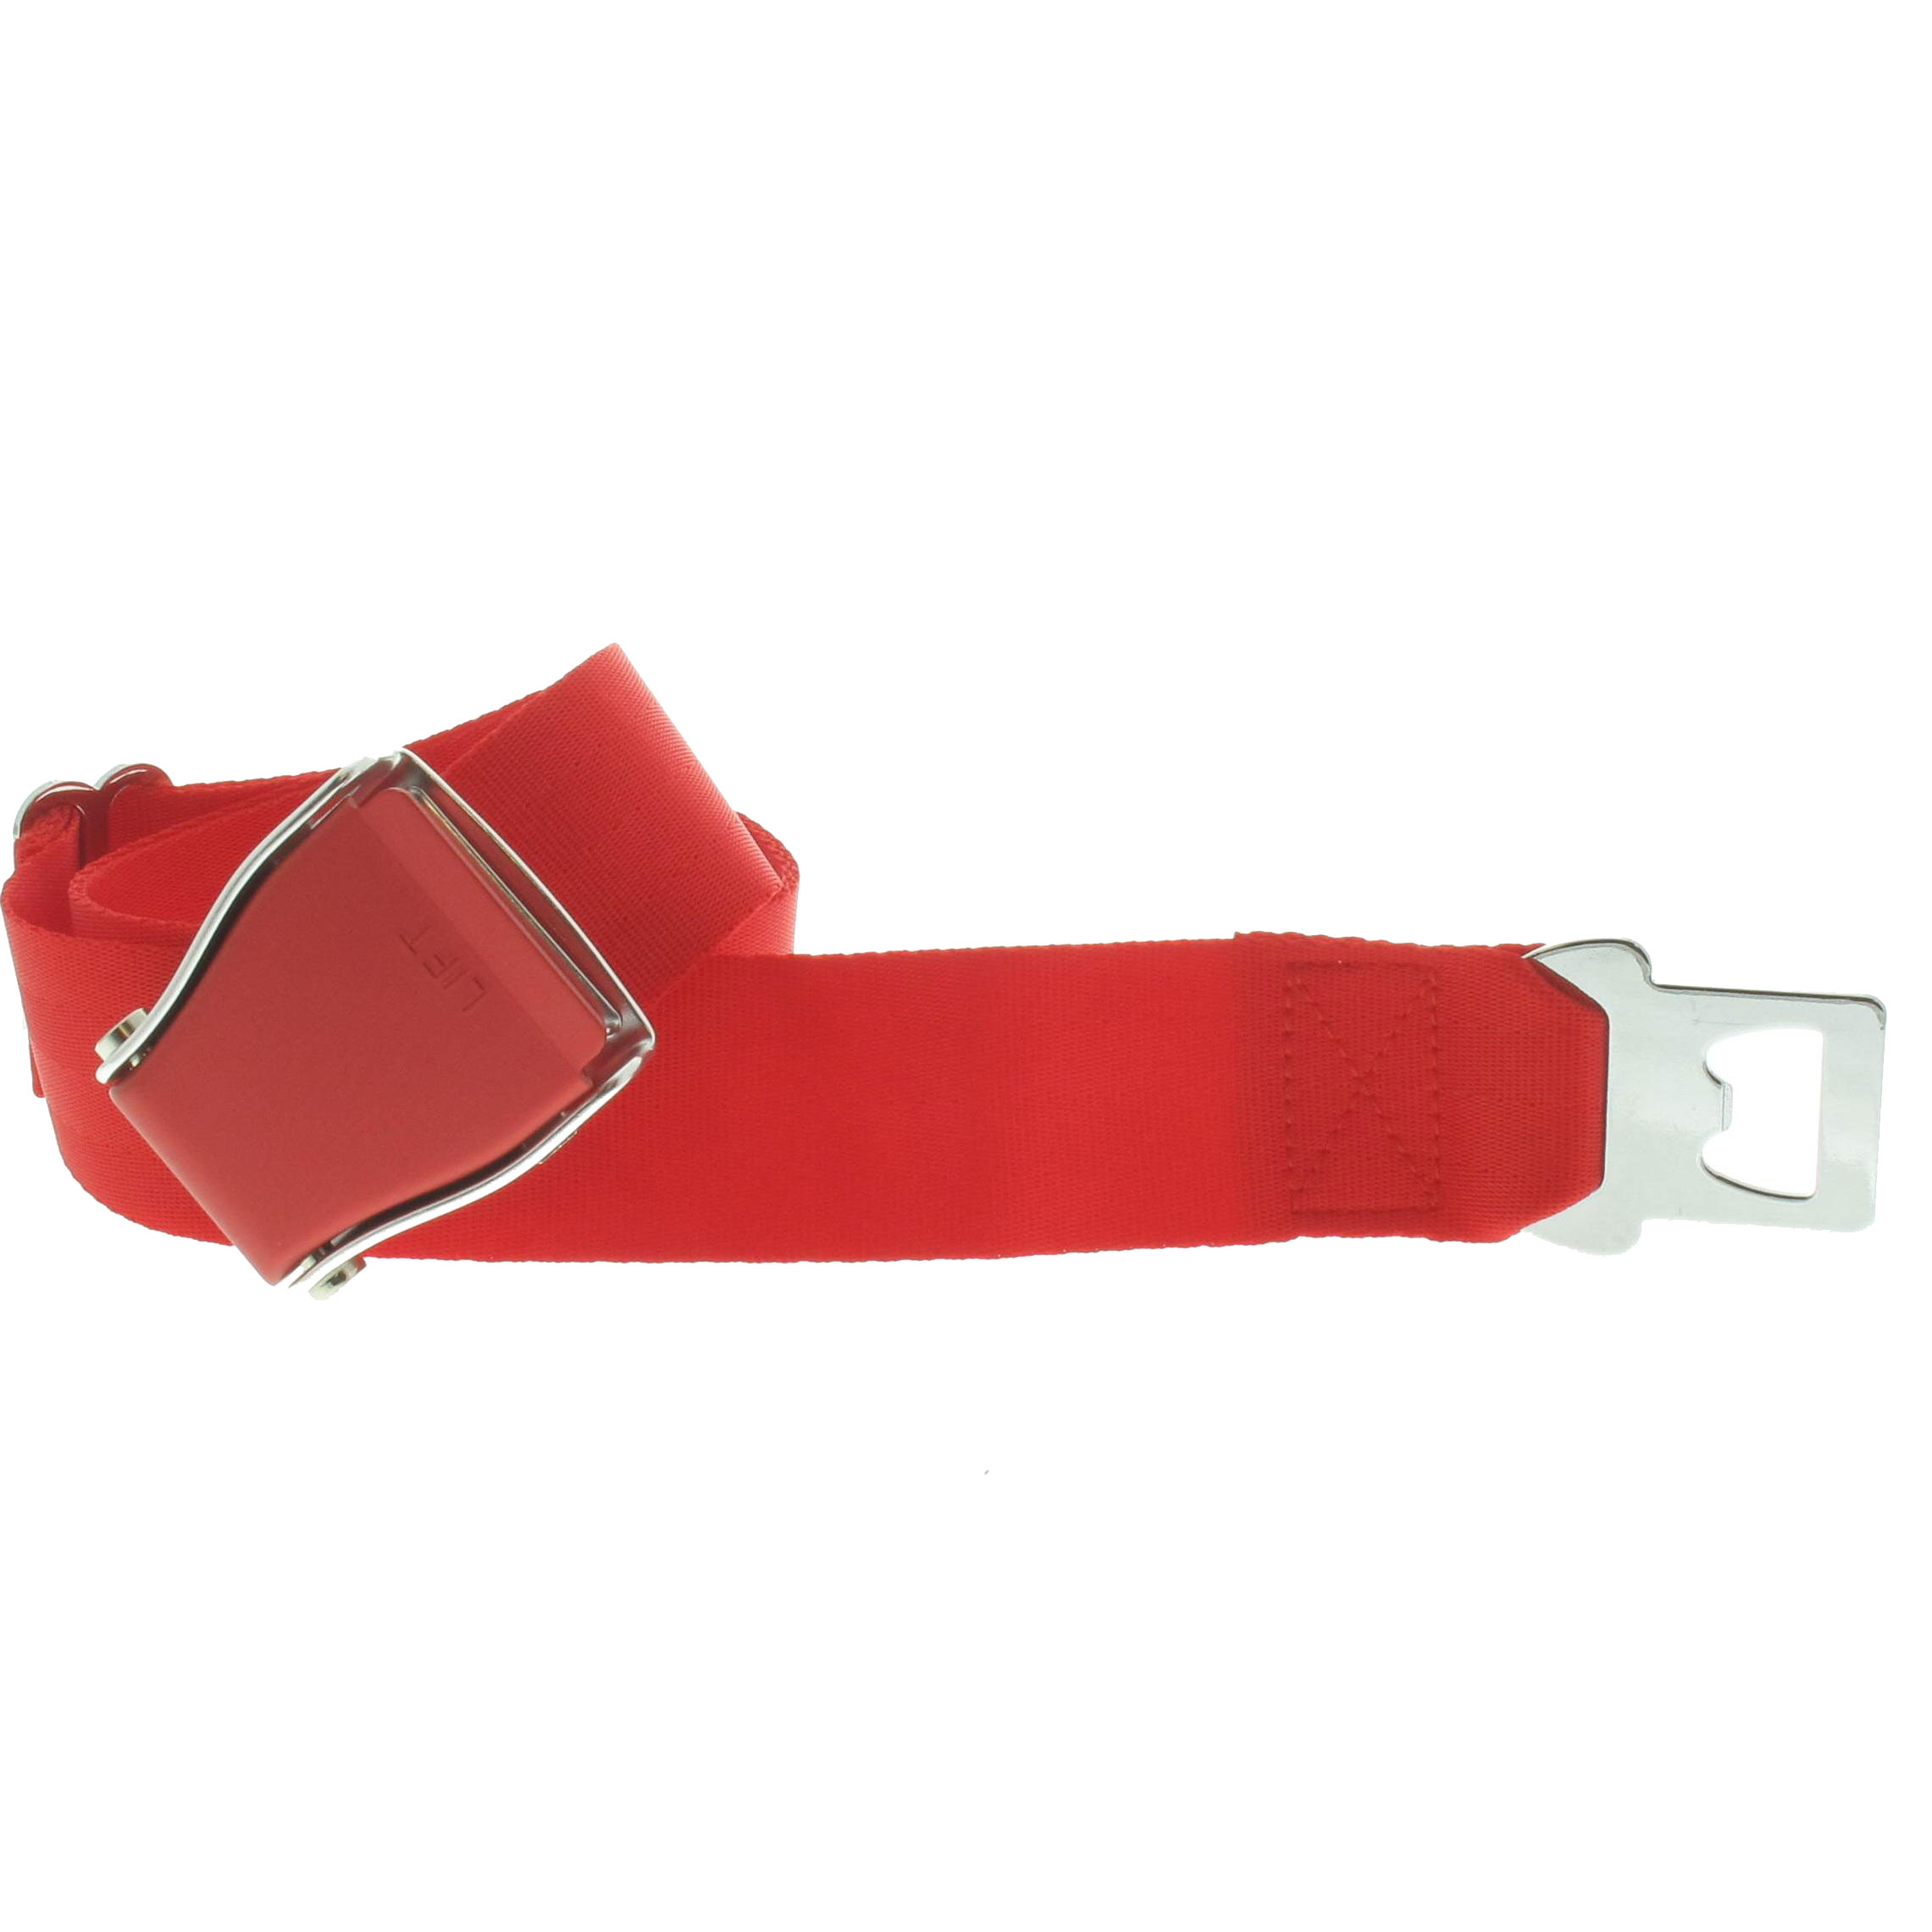 Ceinture Avion total rouge